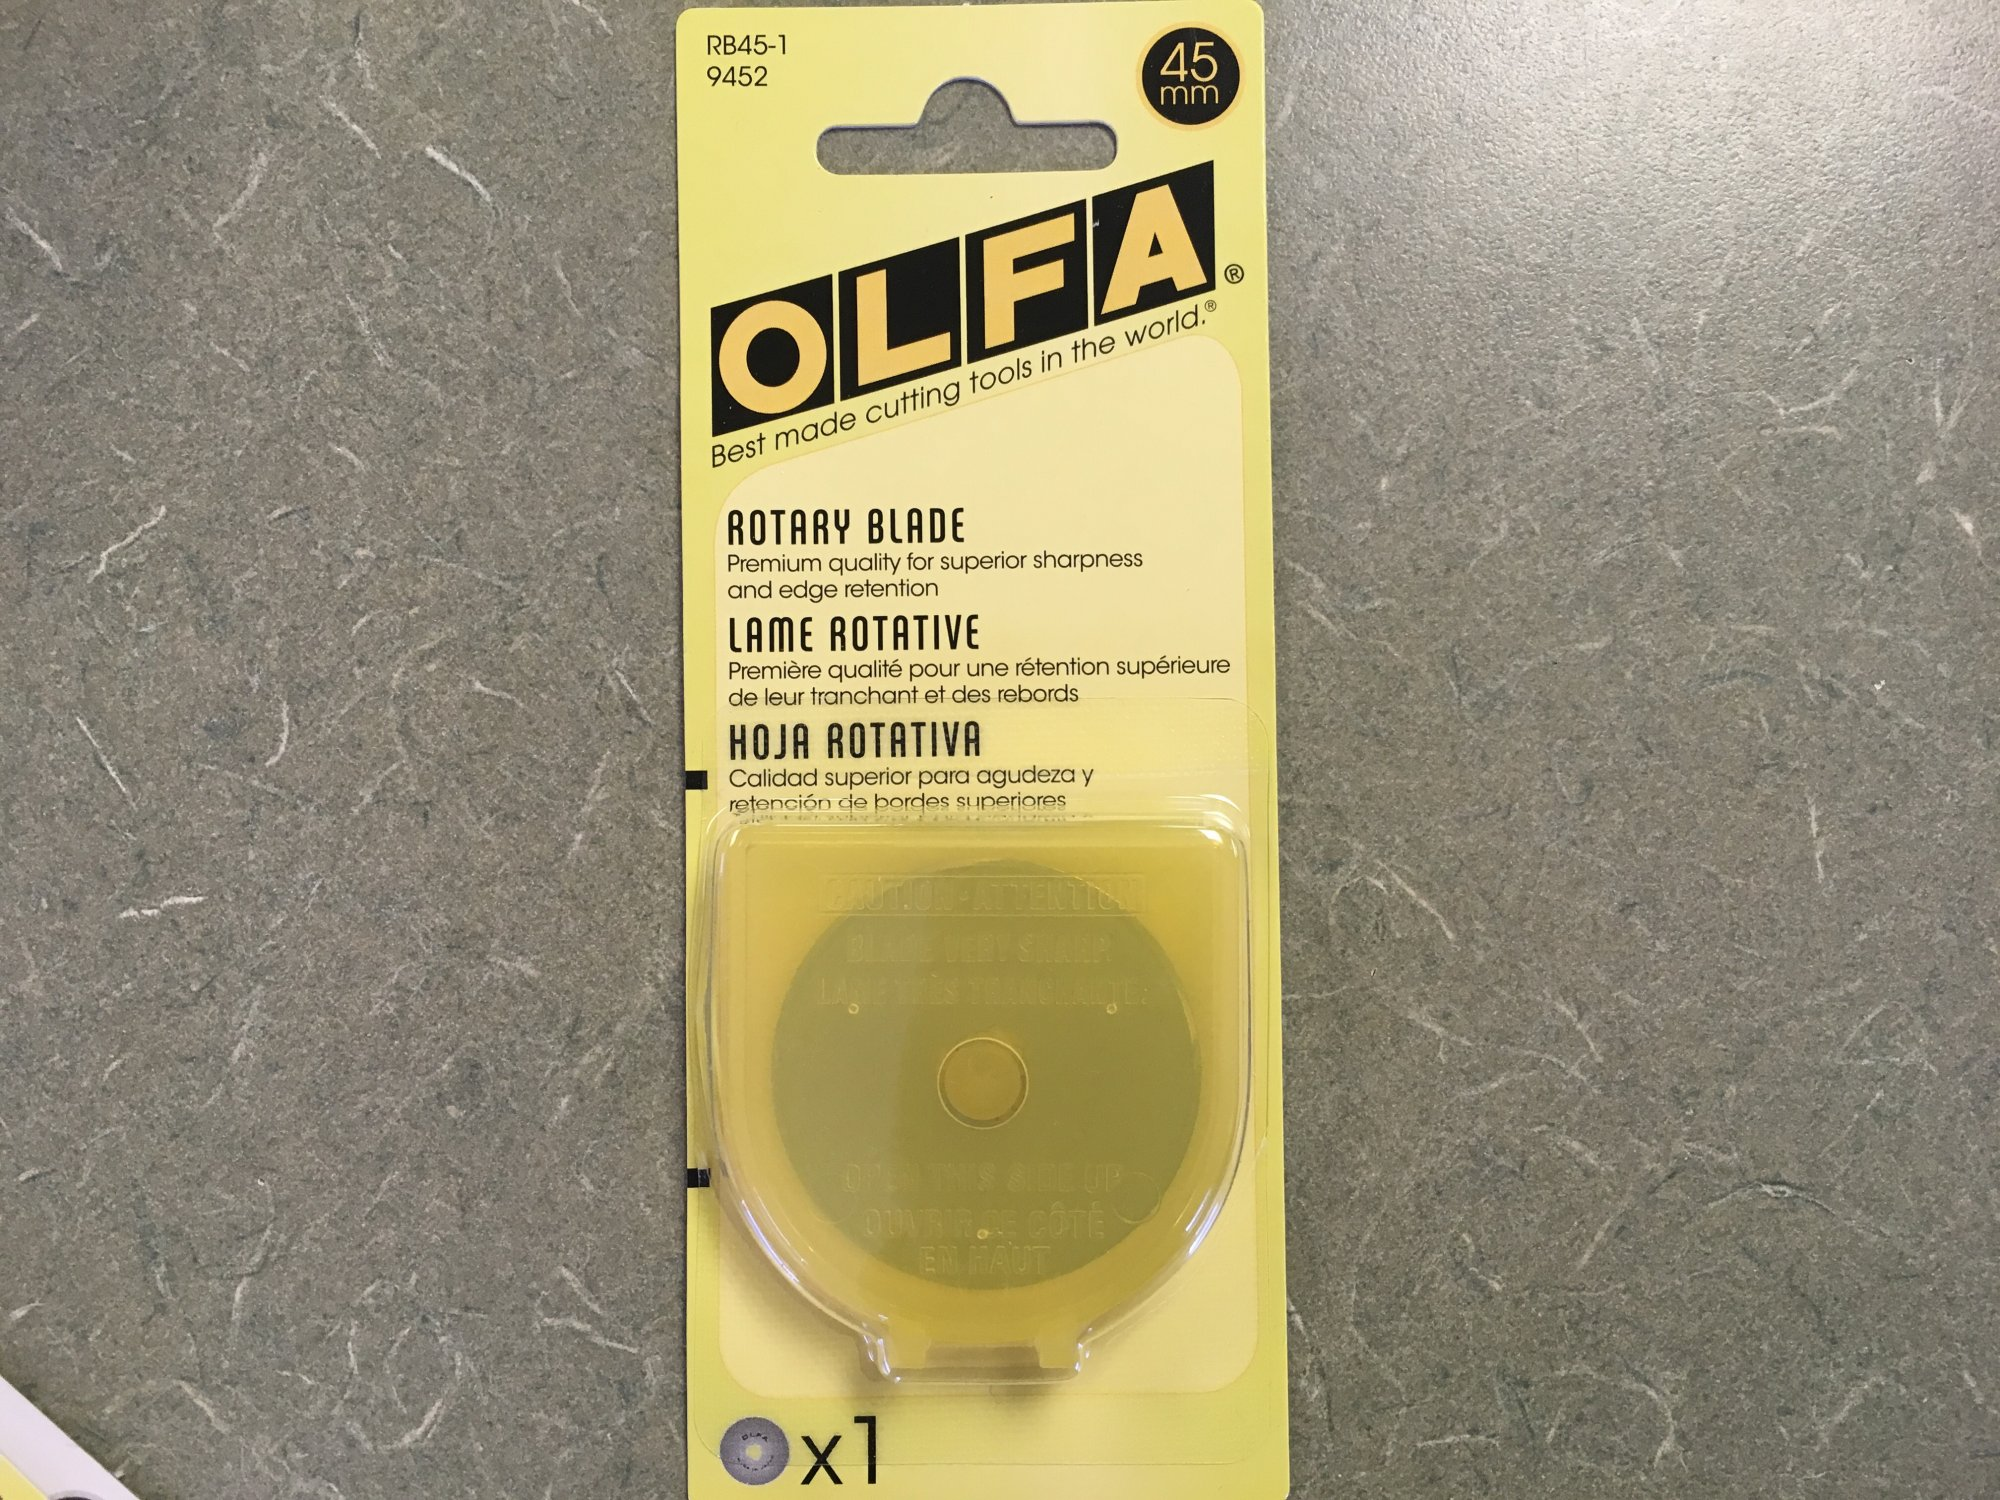 45mm Rotary Blade RB451 by OLFA